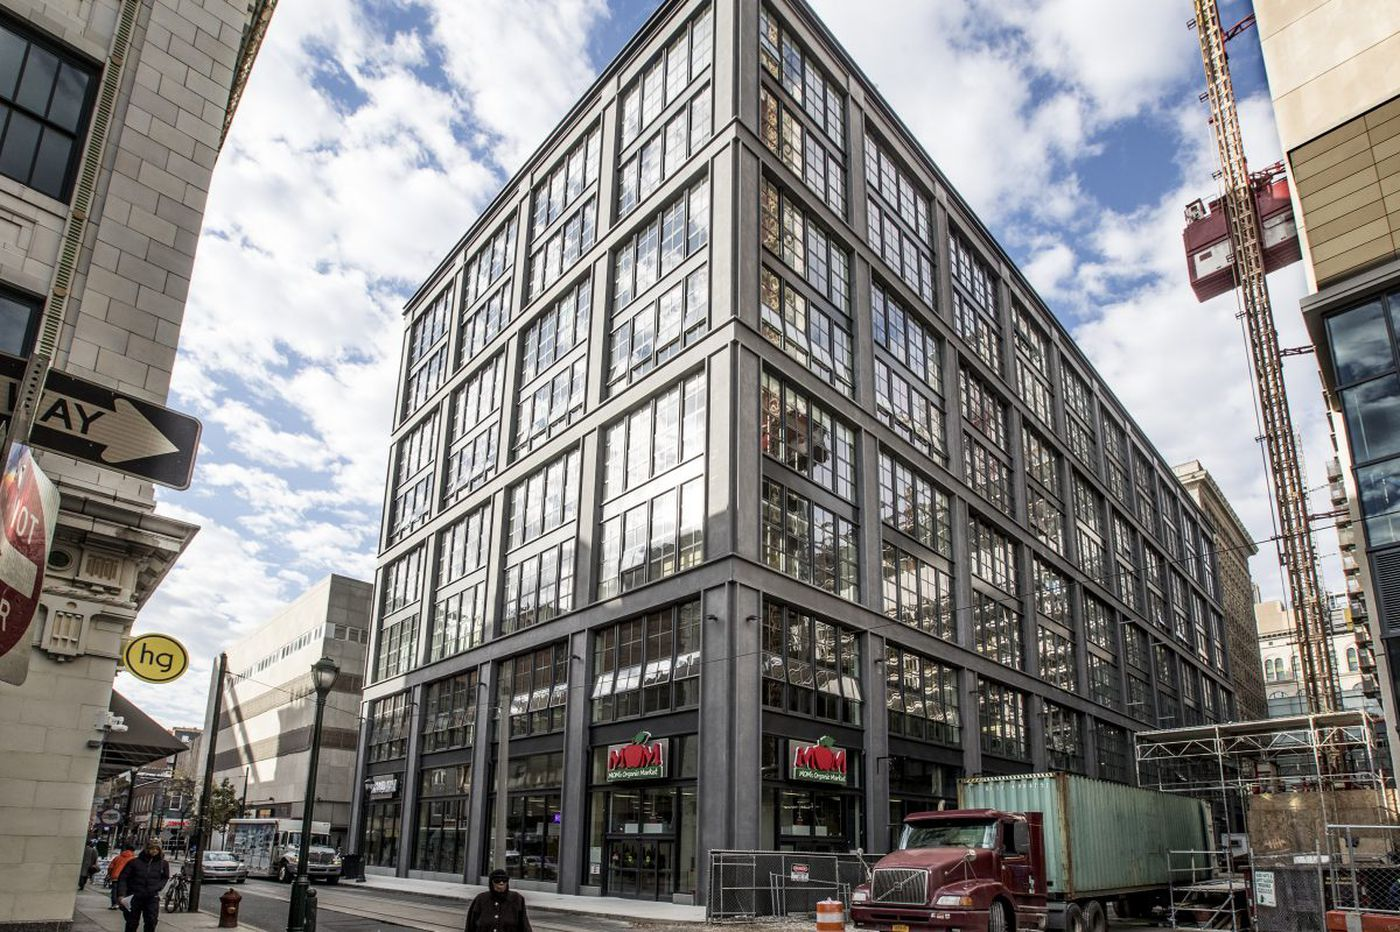 First completed building in Philly's East Market project takes its cues from New York's SoHo lofts